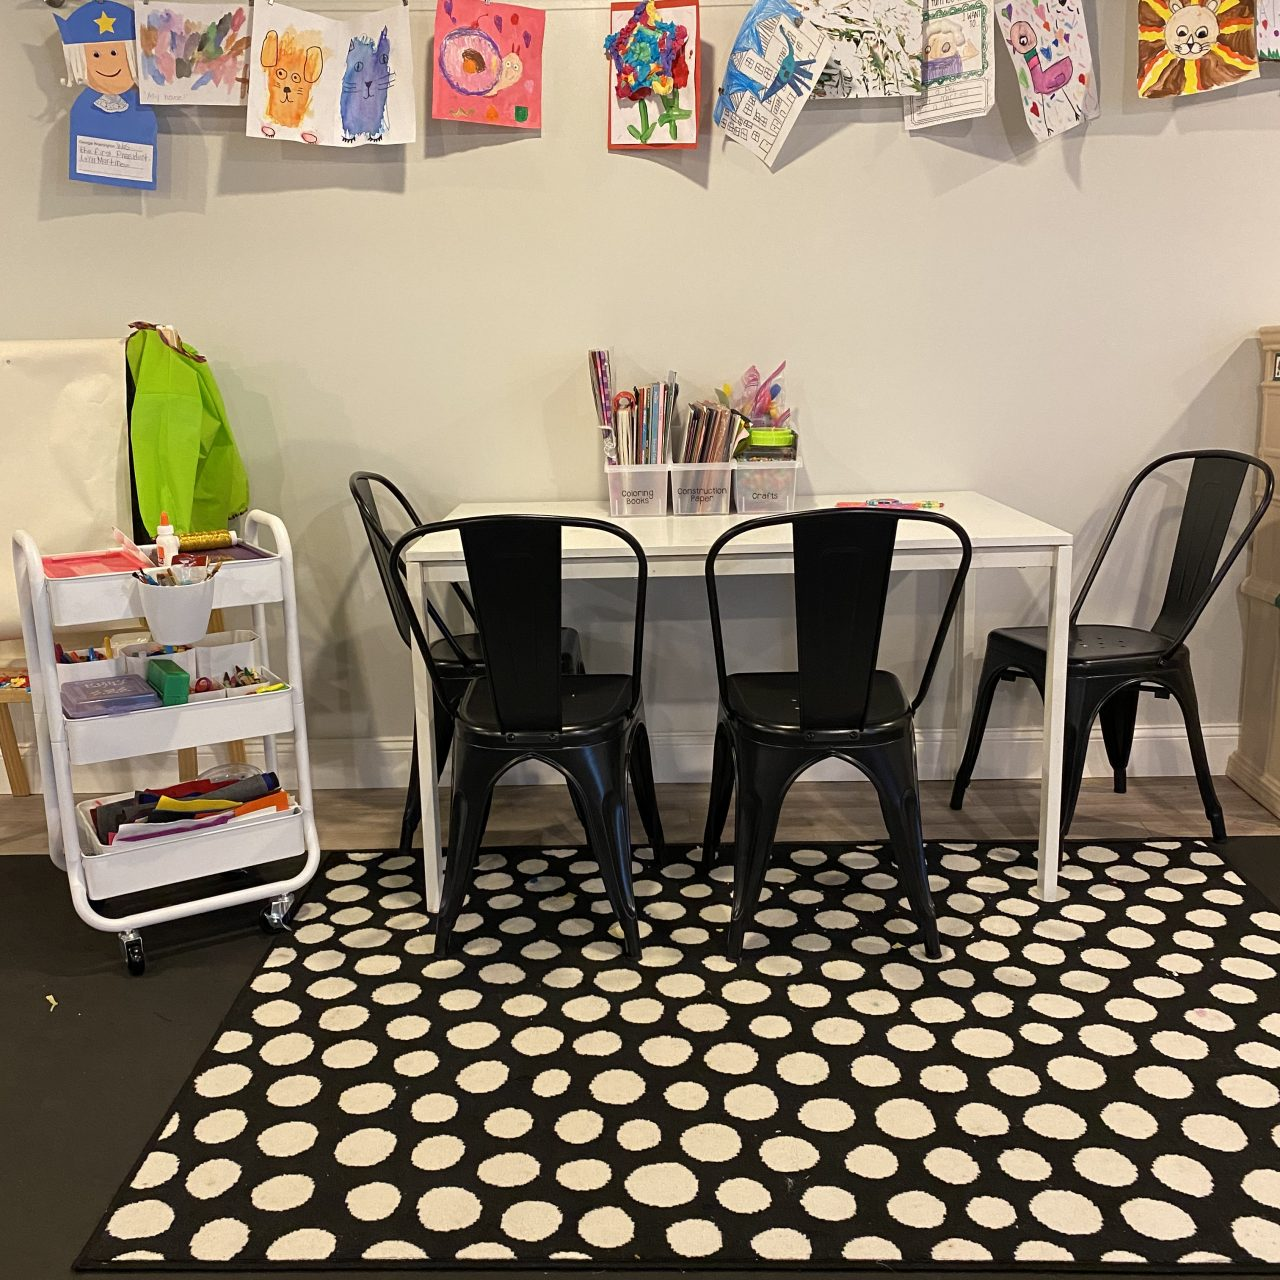 Our Organized Kids Playroom with Organized Interiors